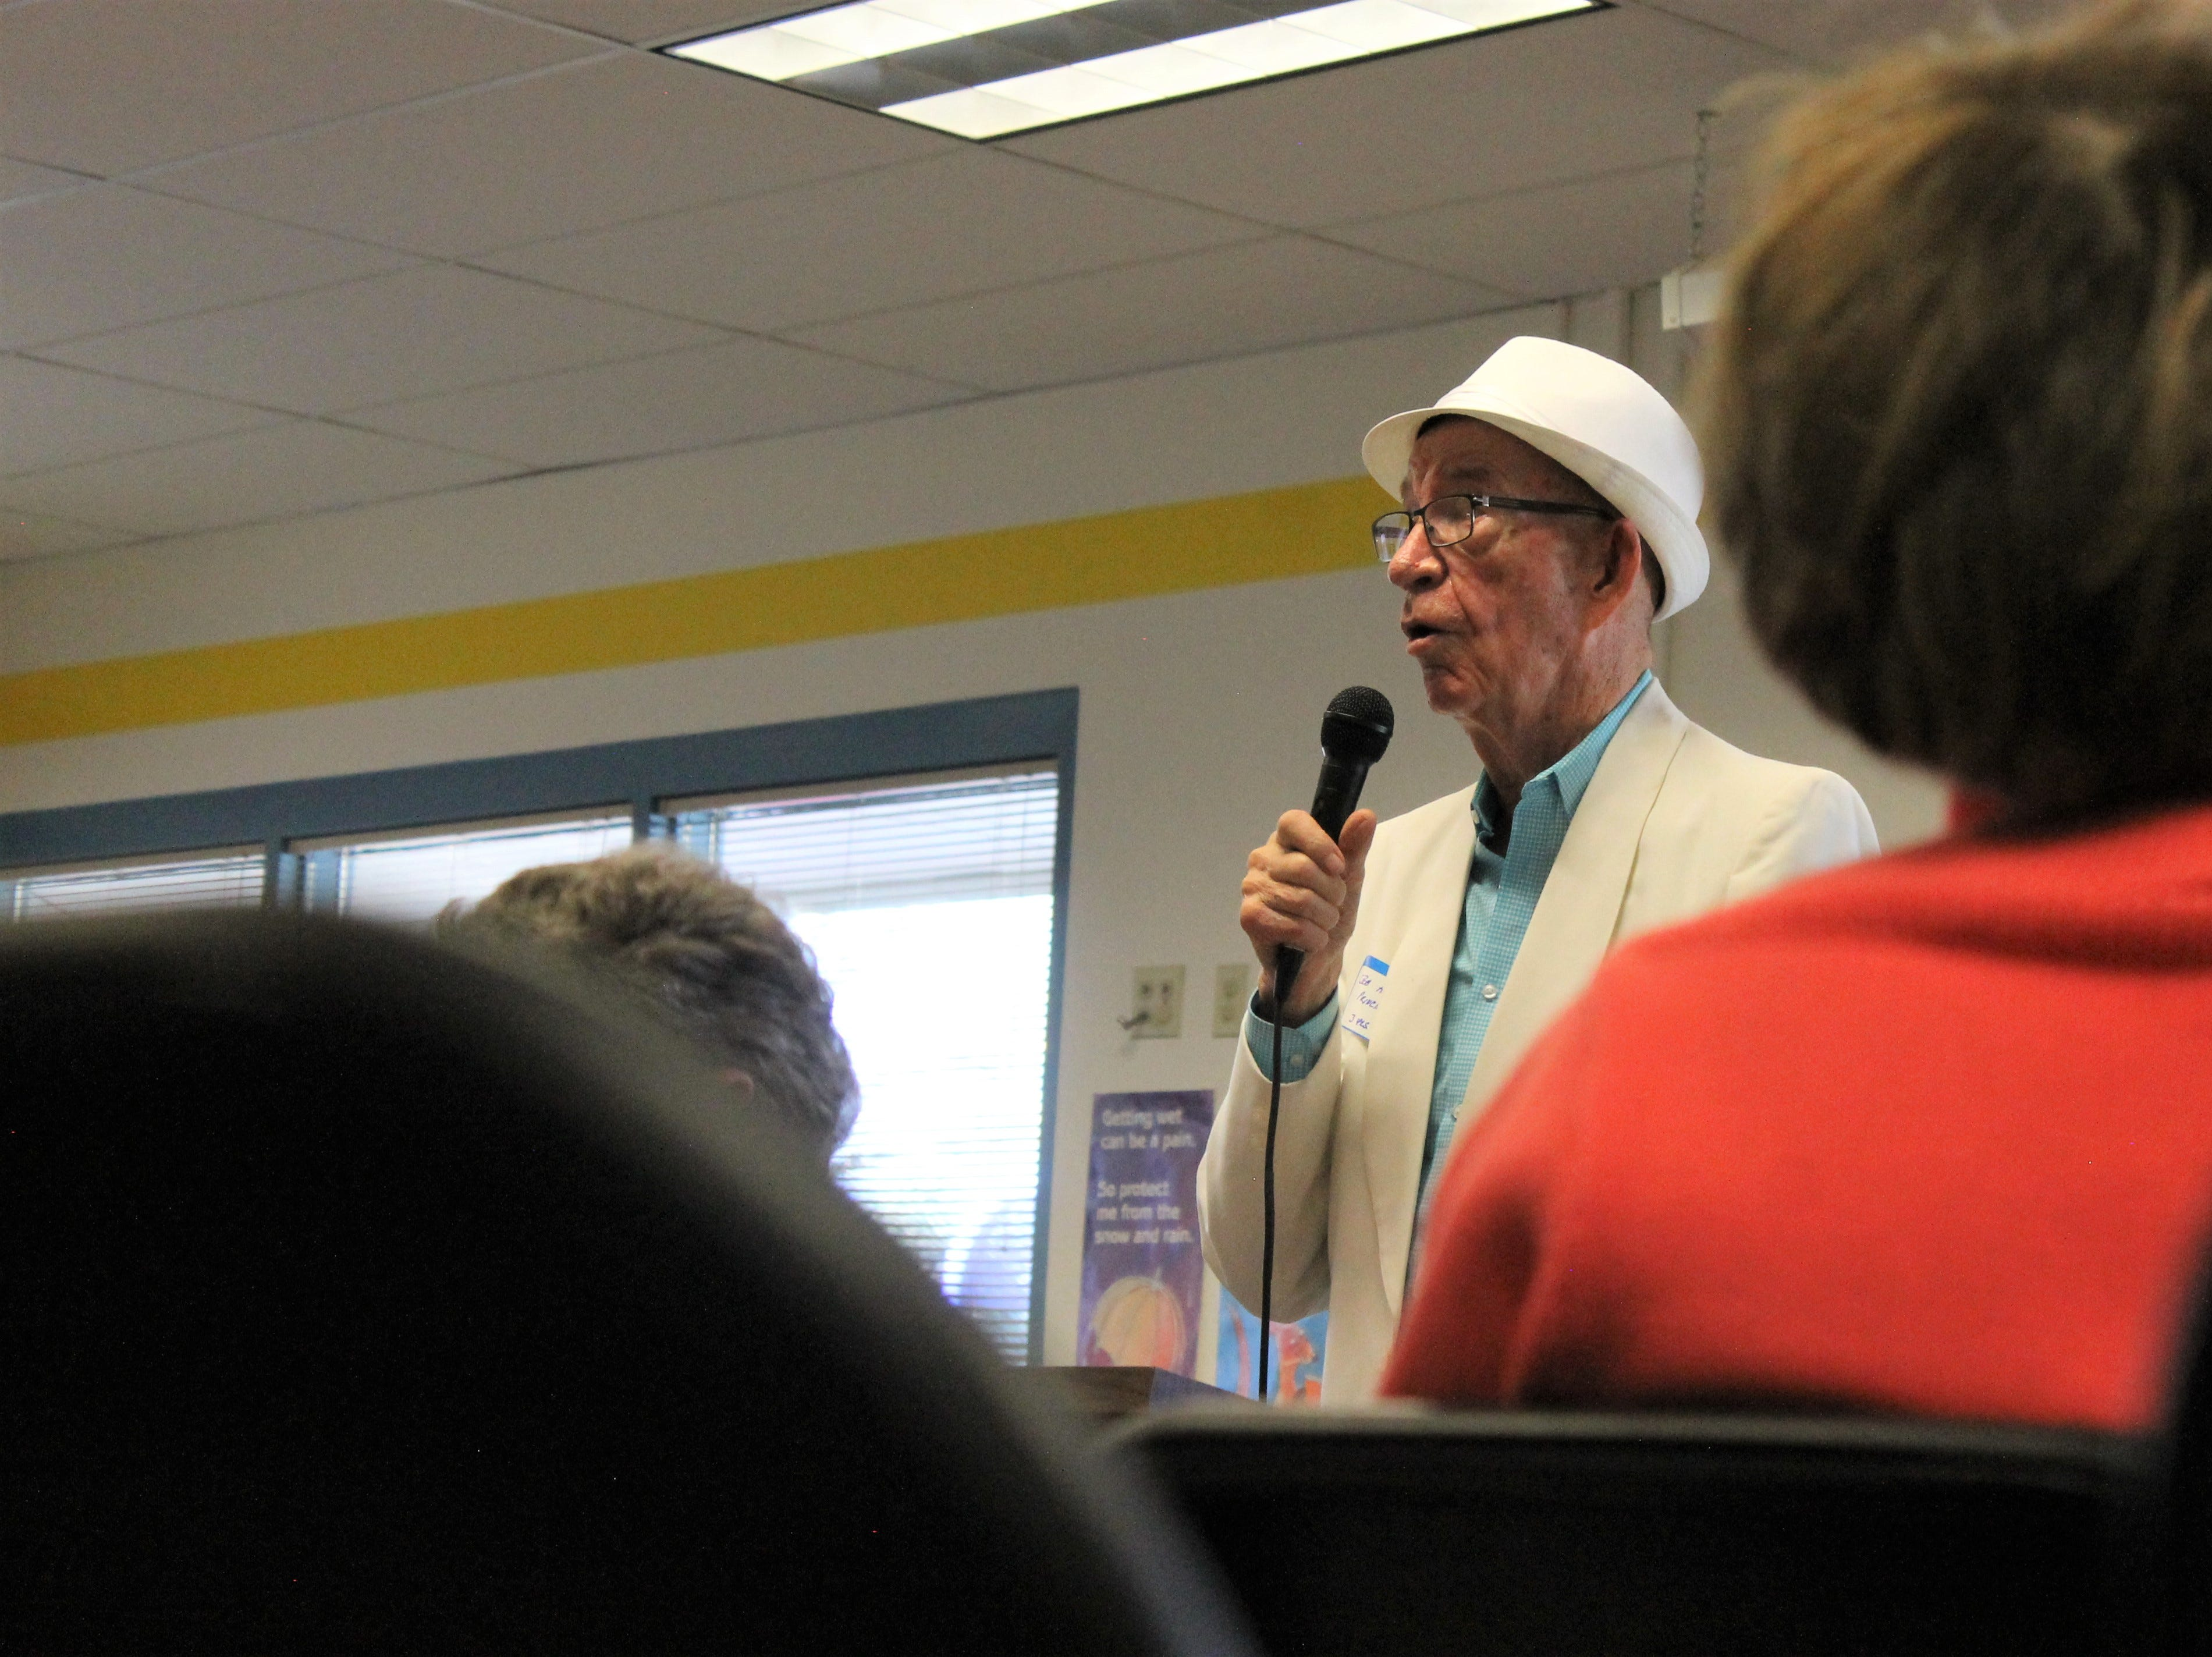 Bob Asmus, 80, is Riffenburgh Elementary School's original principal. He traveled from Denver Friday, April 26, 2019 to speak at the school's 50th anniversary celebration.